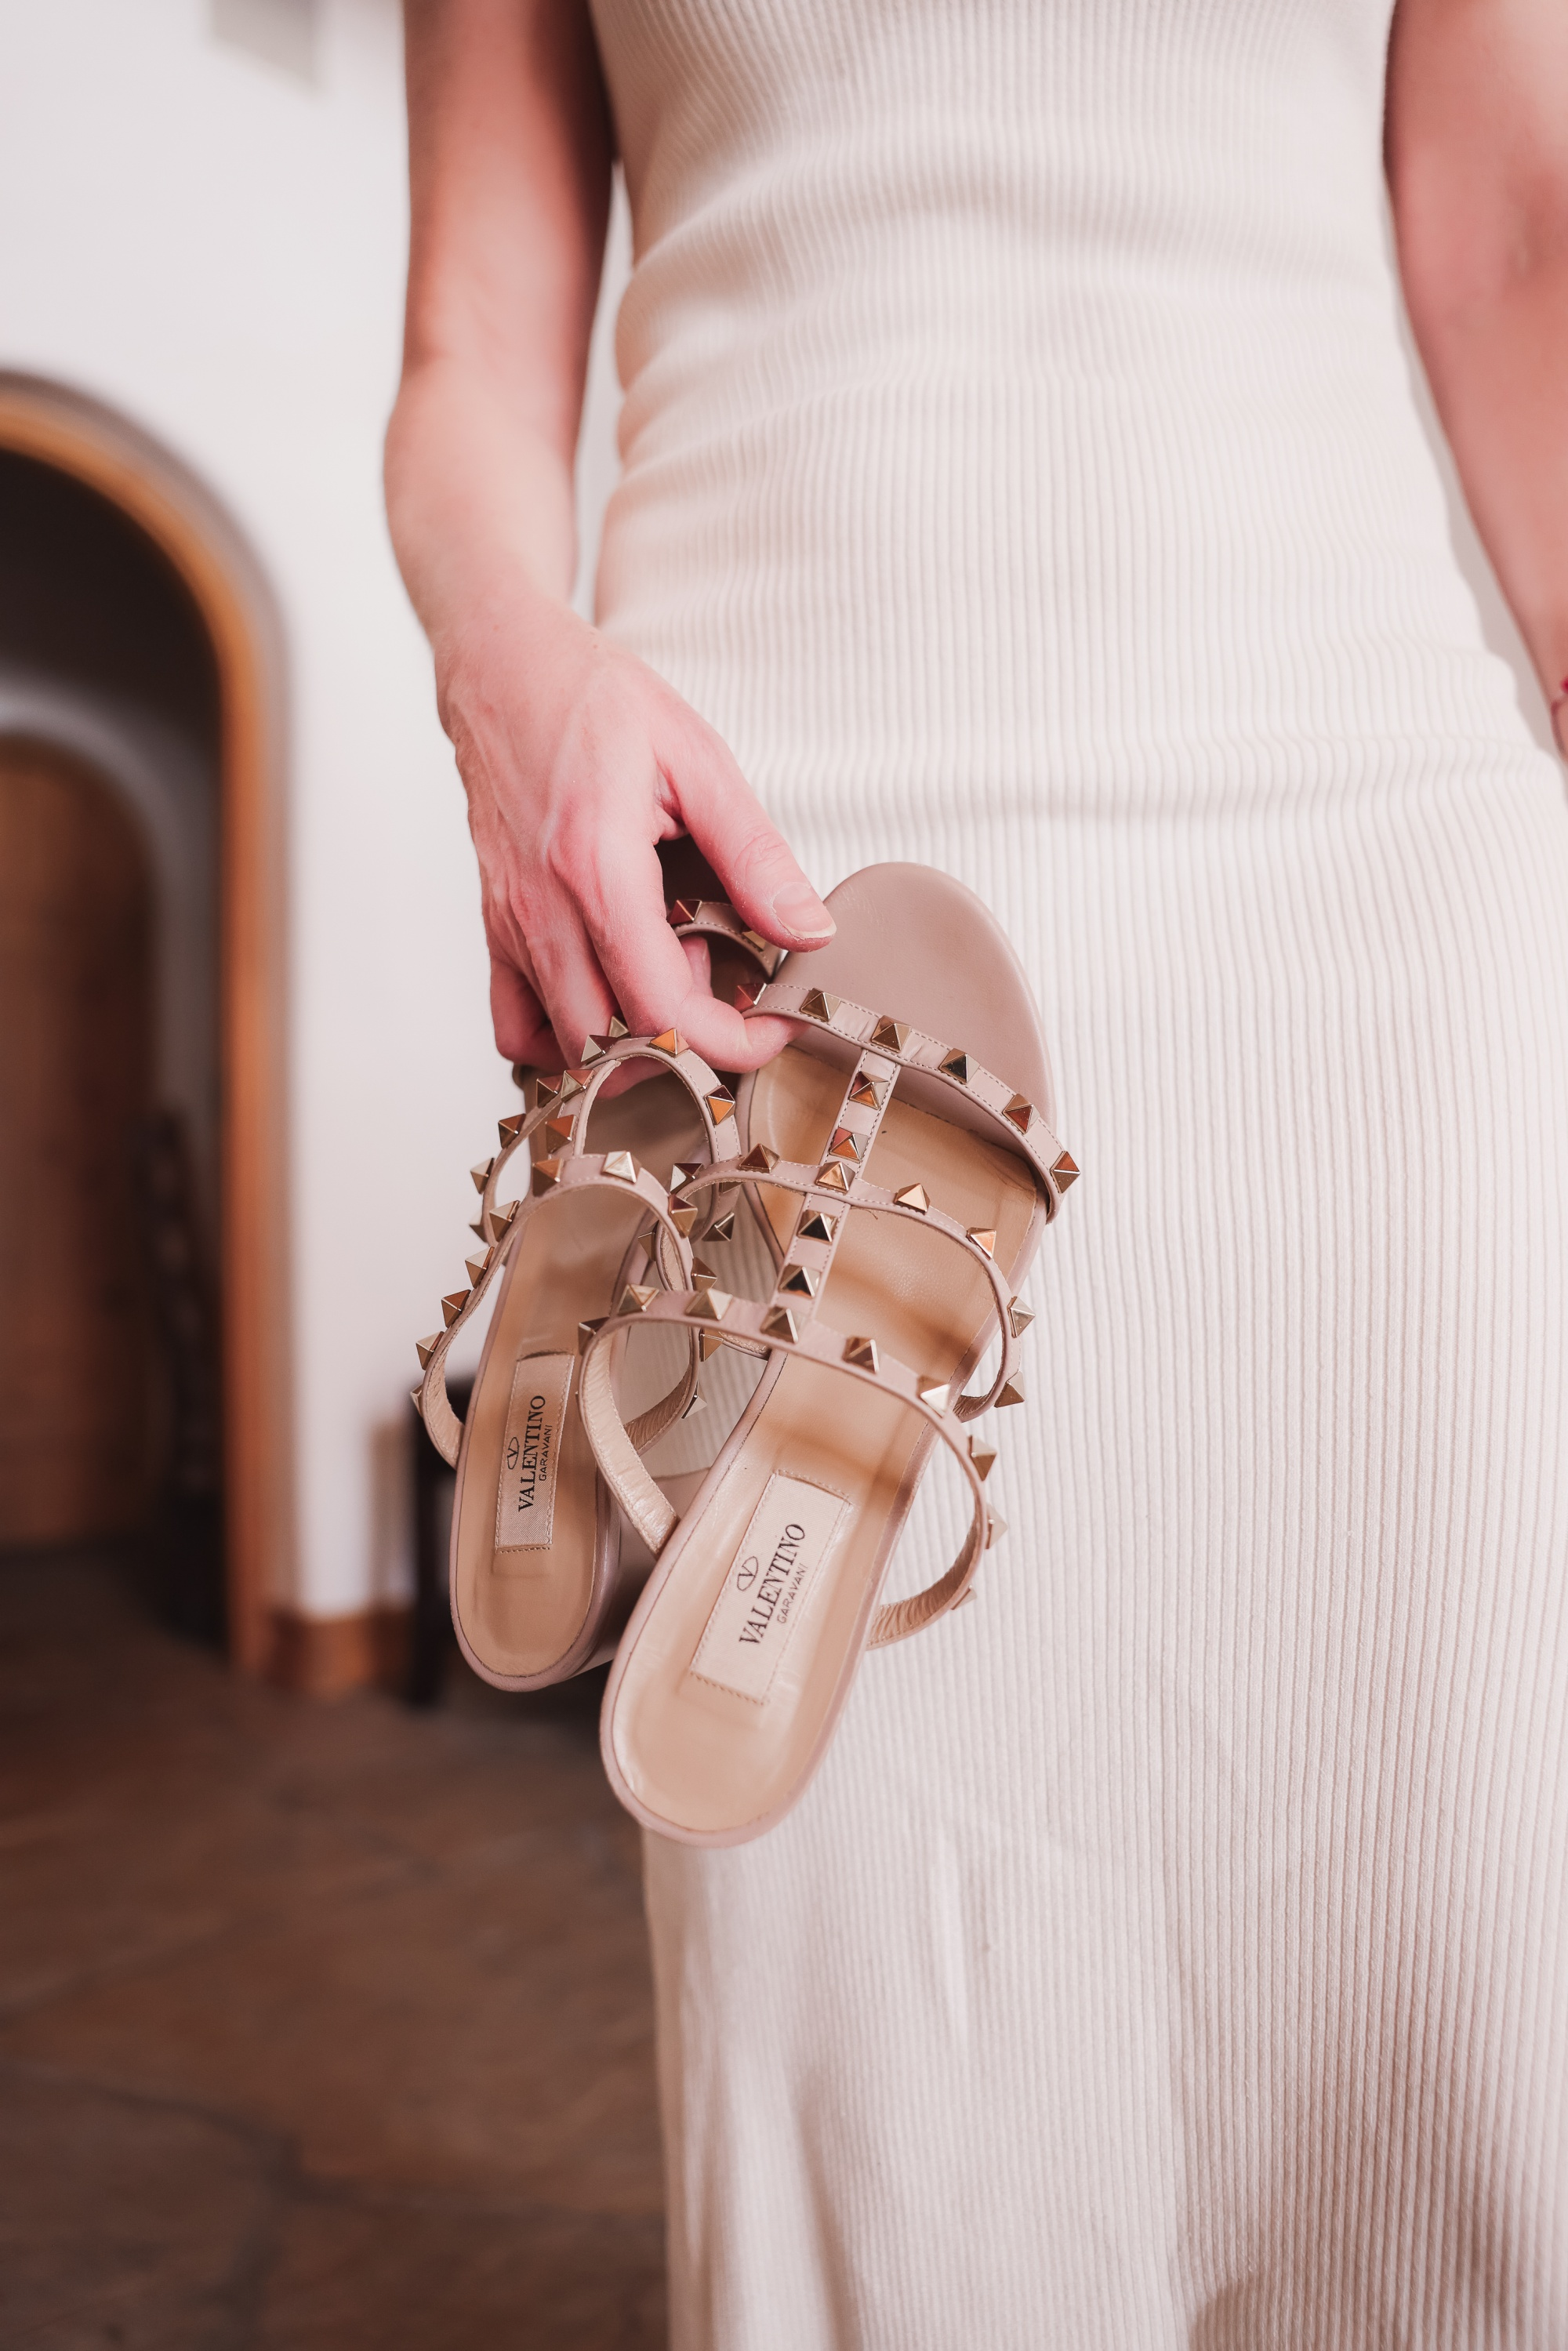 Valentino Rockstud sandals in beige paired with white knit tank dress